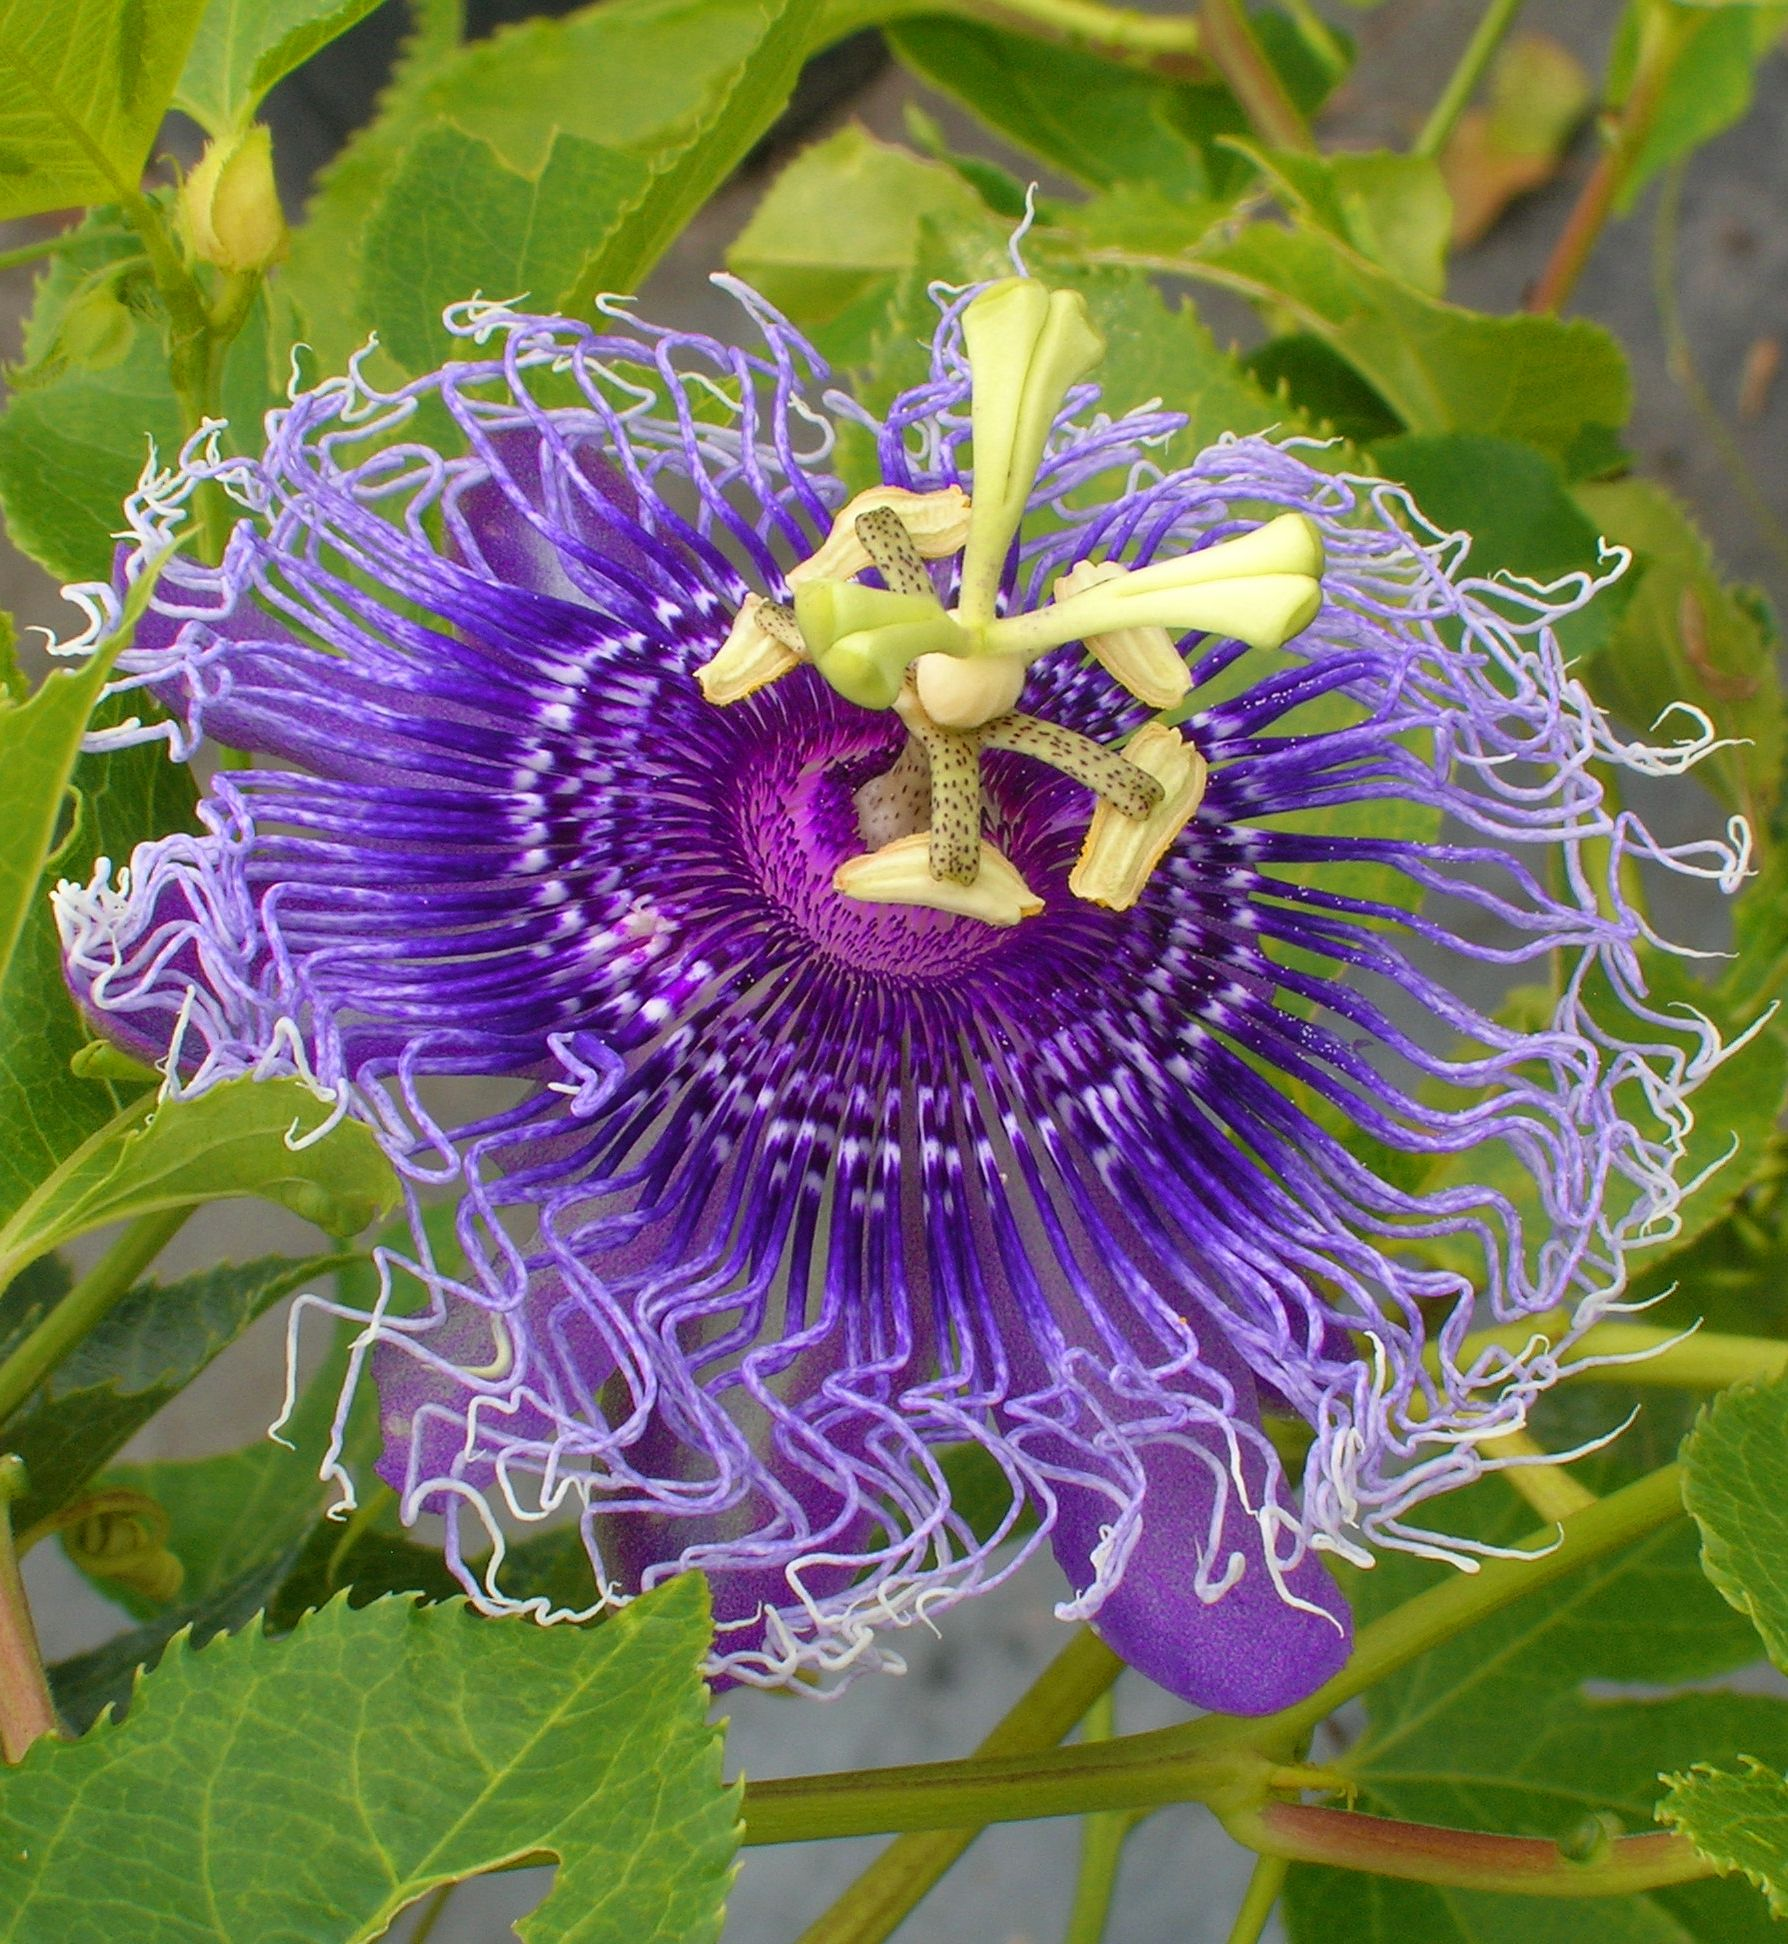 Passiflora Incarnata Purple Passionflower True Passionflower Passifloraceae Passion Vine Unique Flowers Plant Fungus